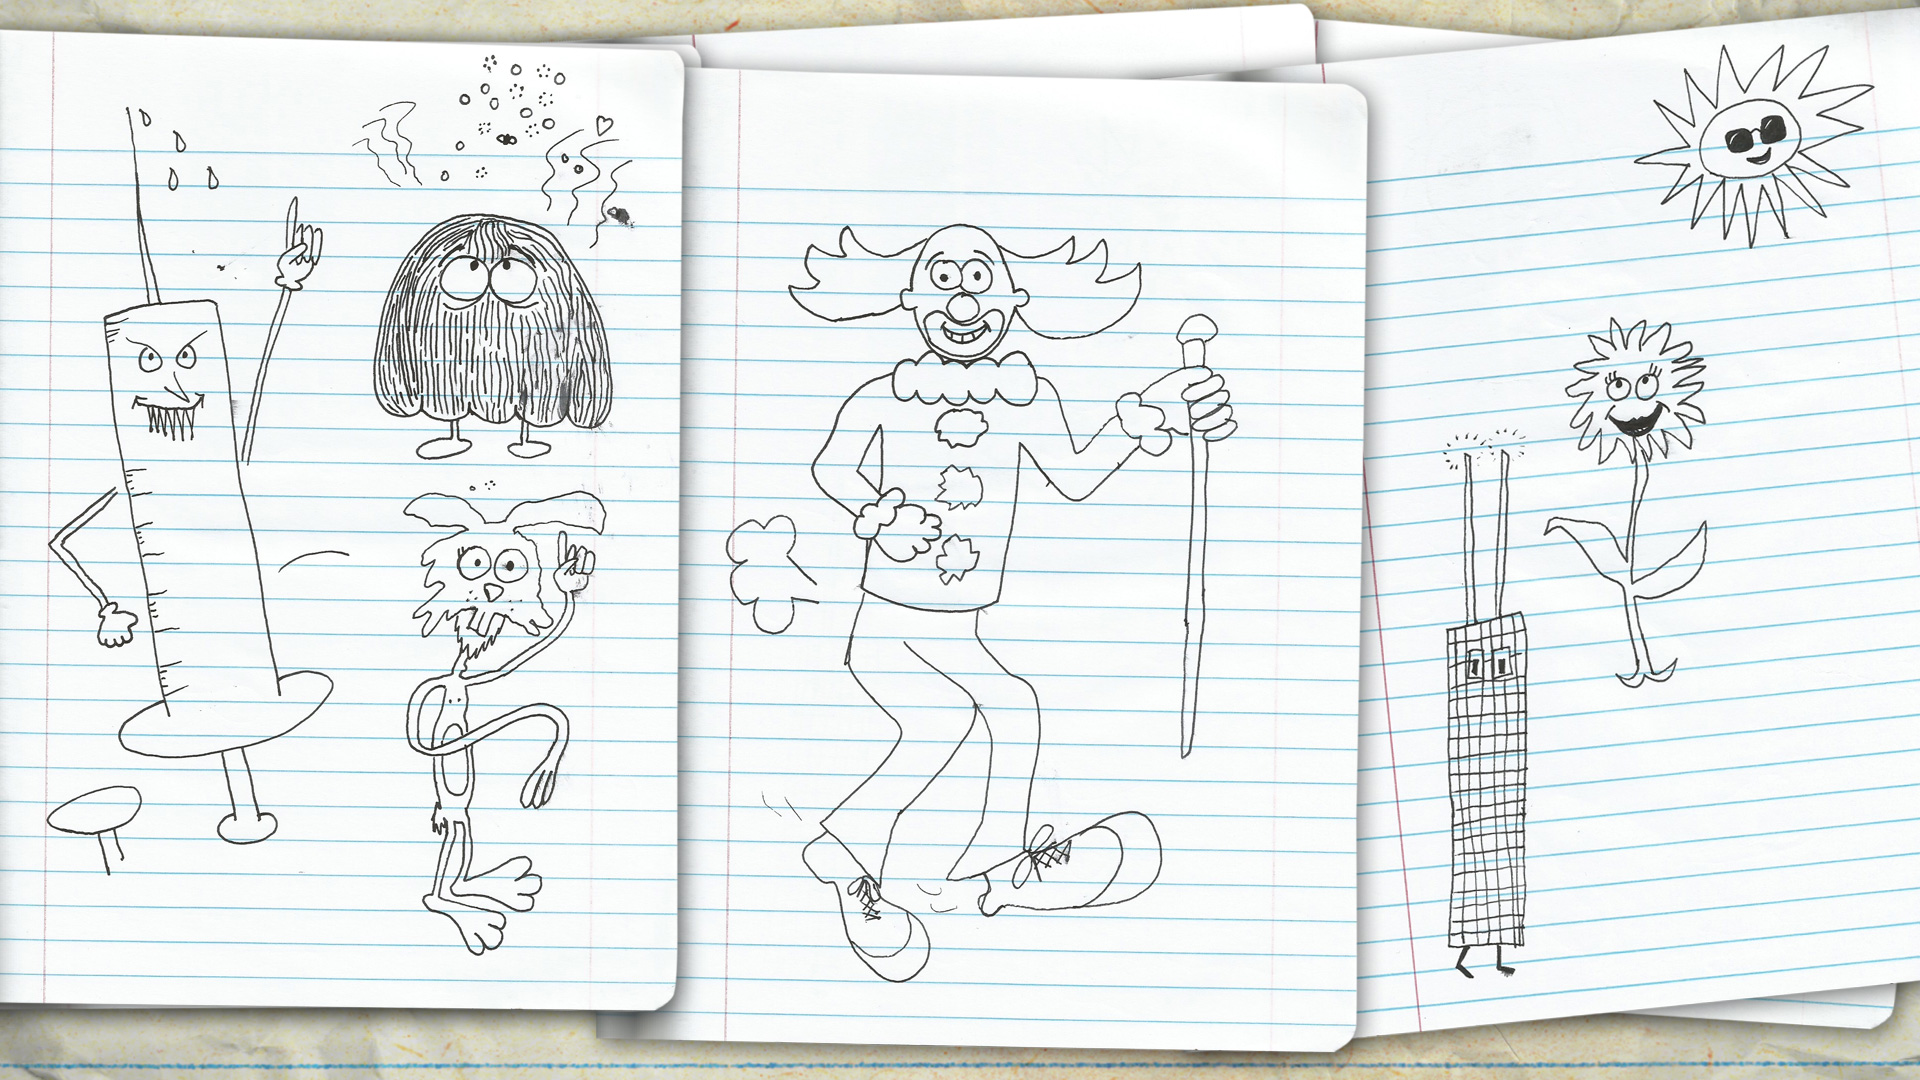 Nobunny - I Was On The Bozo Show - Original B/W Character Designs by Justin 02